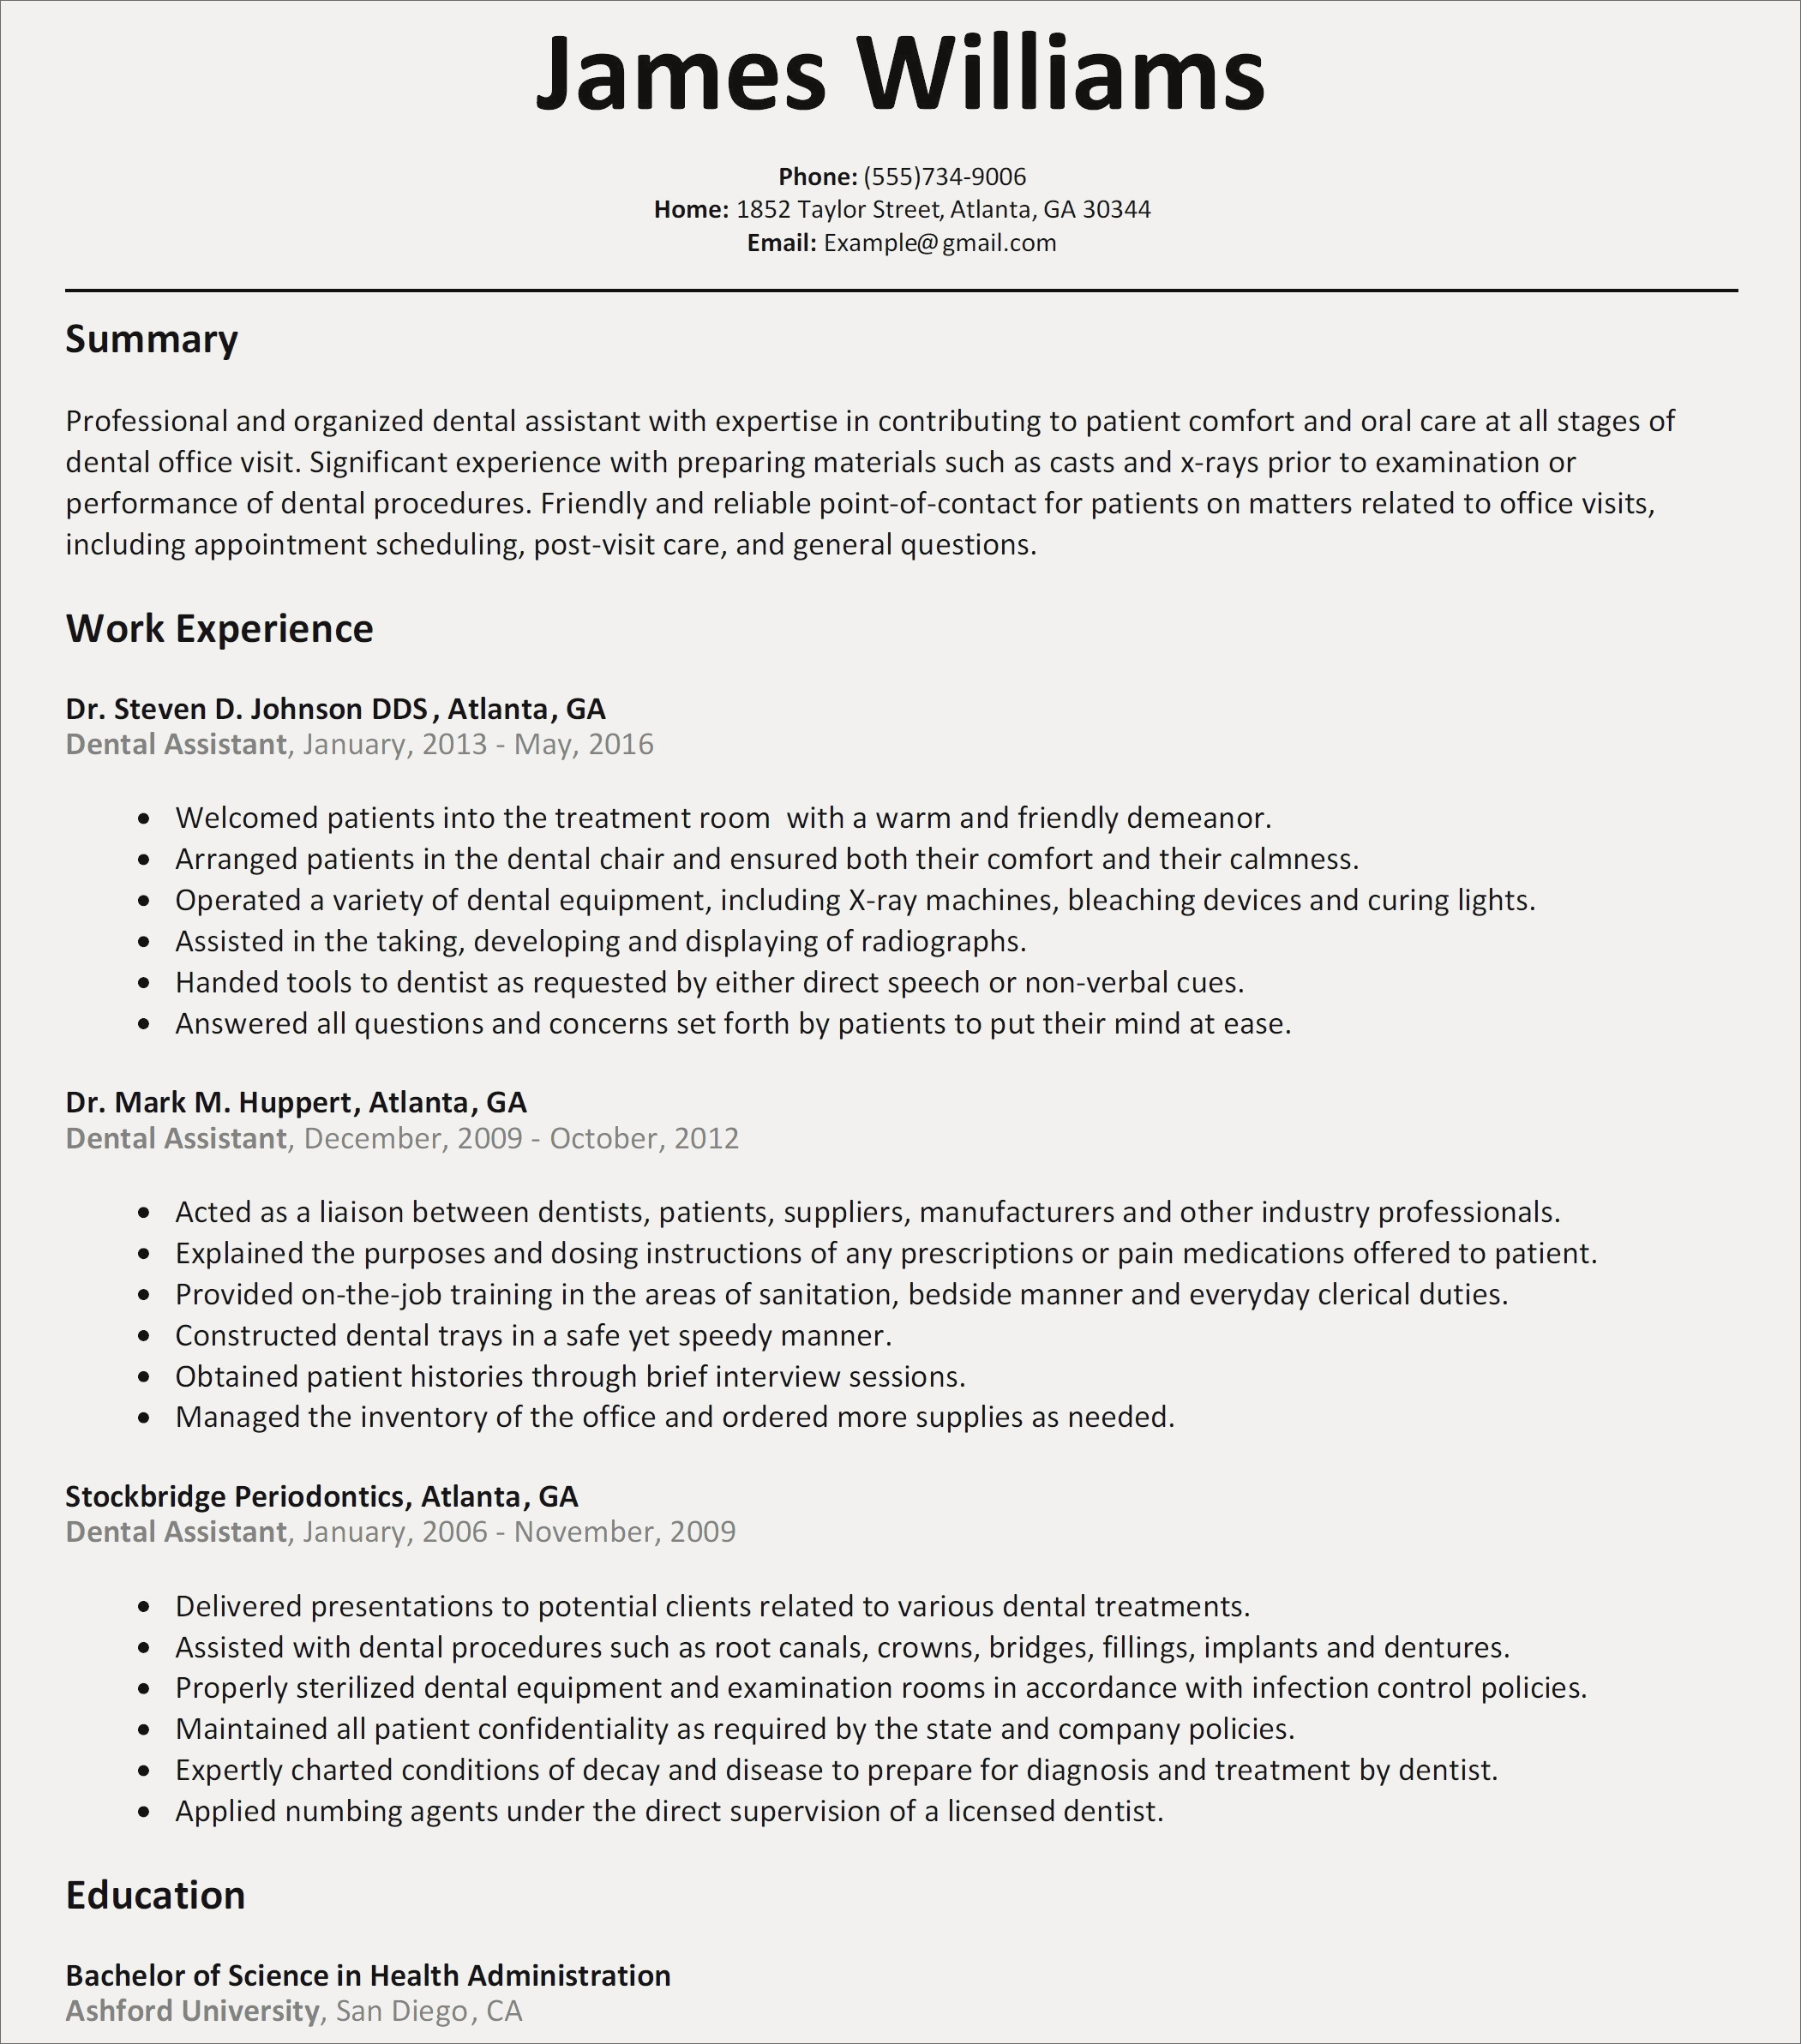 Make A Resume - How to Make A Resume Cove Best How to Write A Cover Letter for